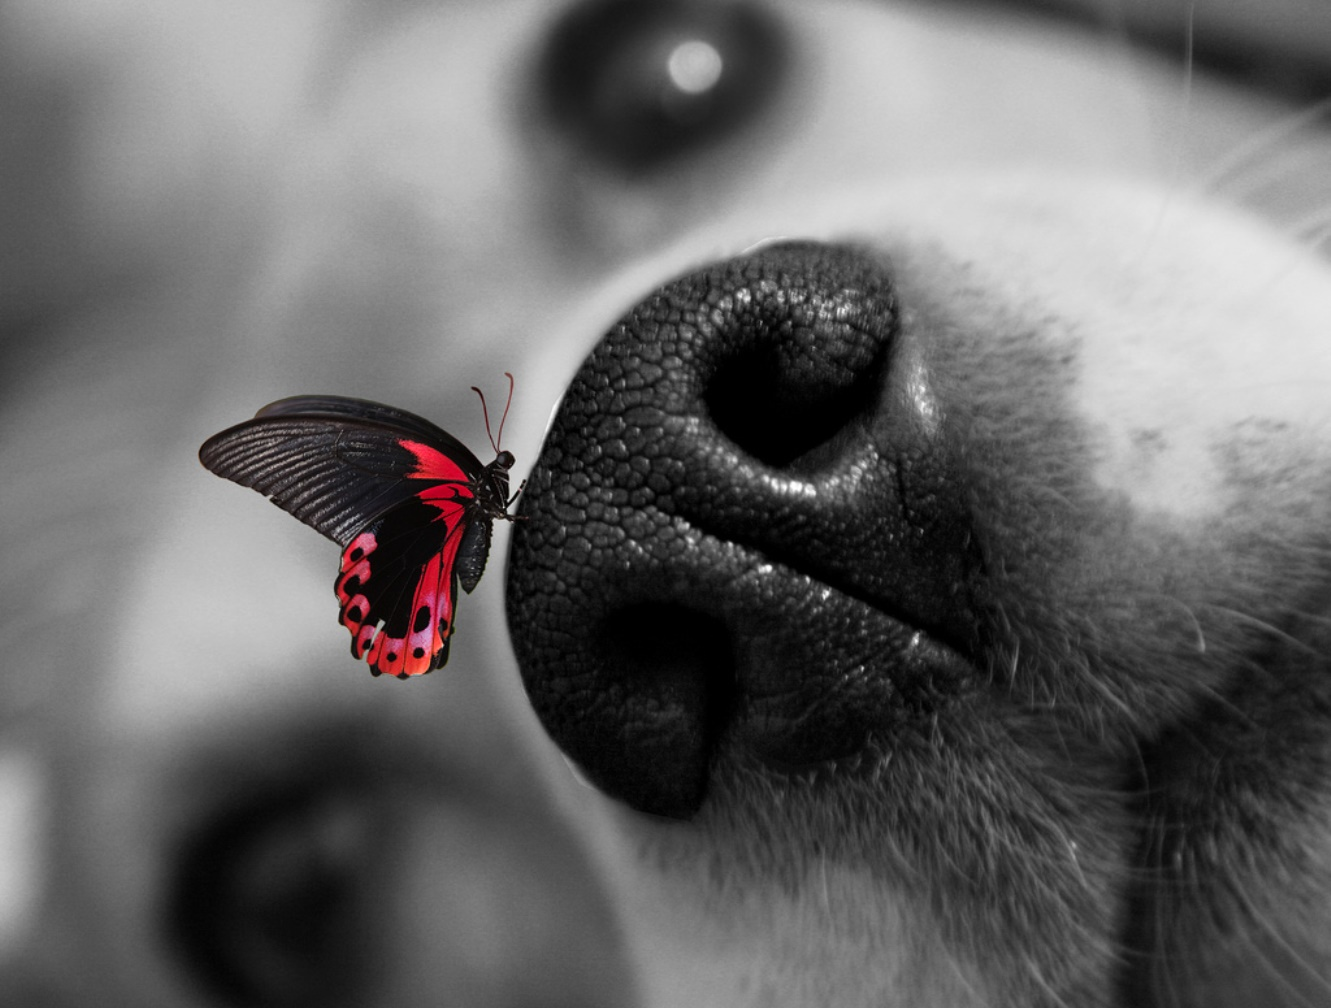 dog-and-butterfly-dogs-37782000-1331-1008